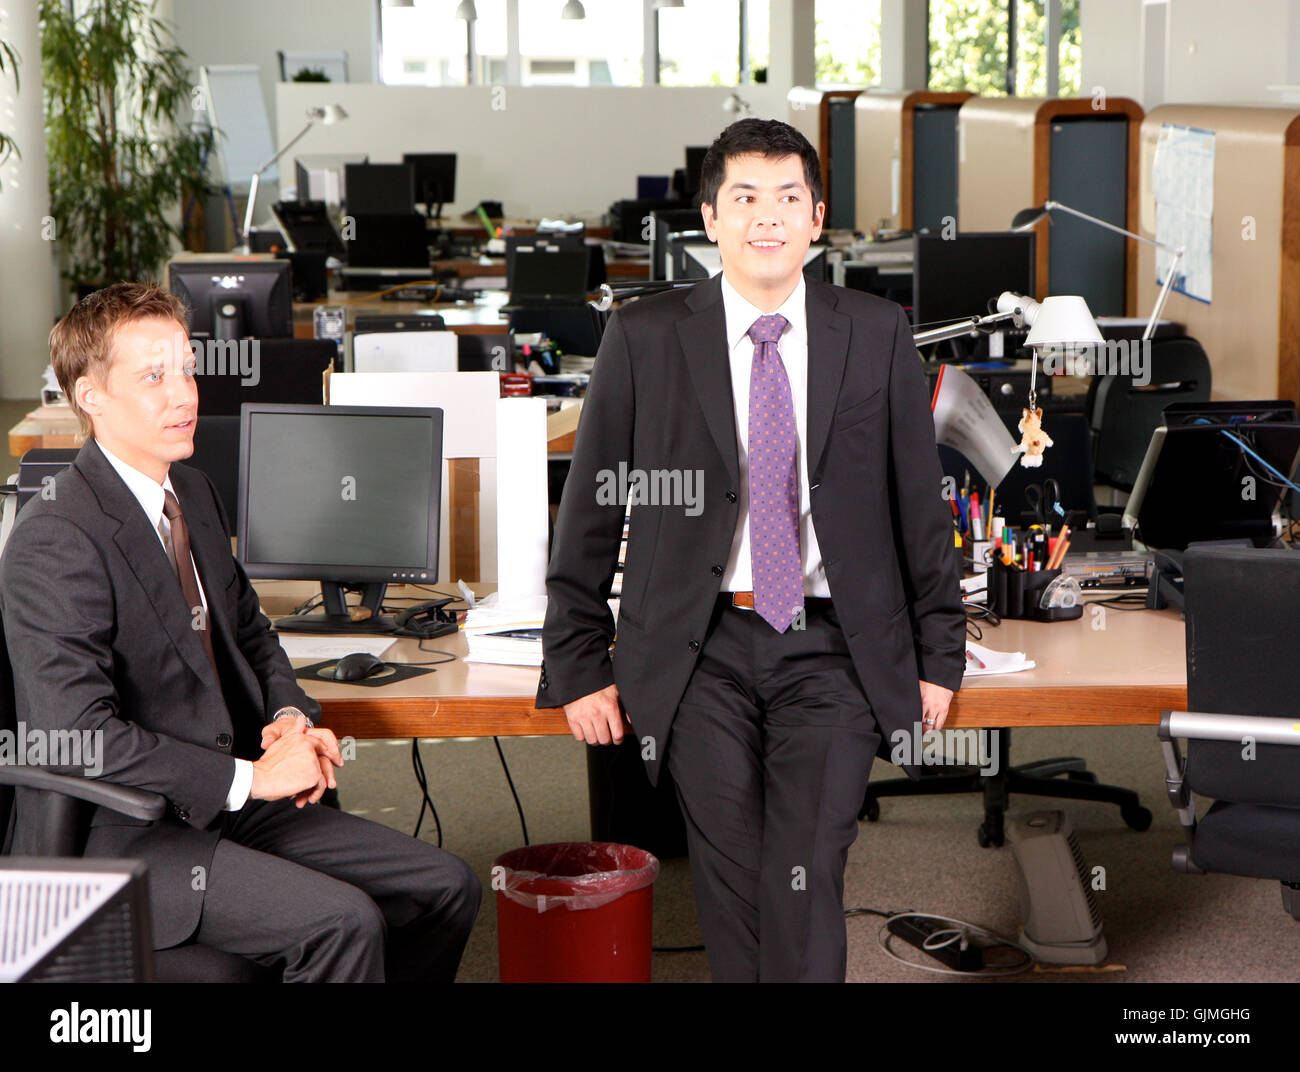 colleagues - Stock Image